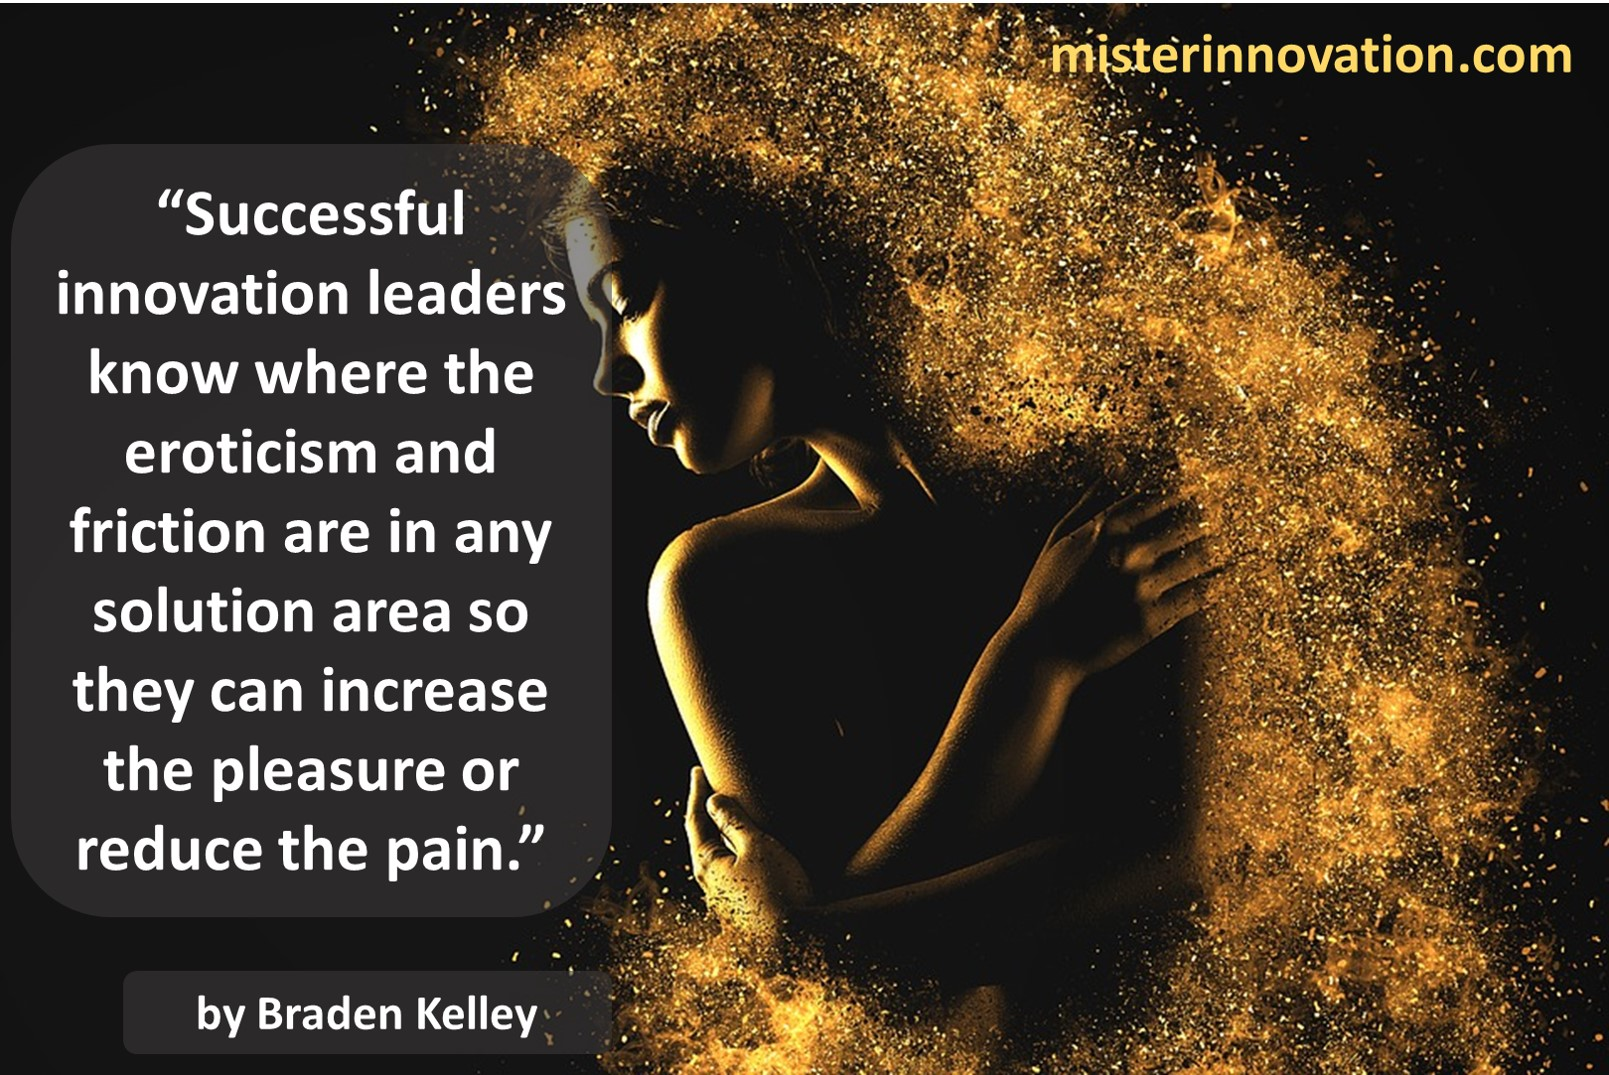 Braden Kelley Quote on Innovation, Eroticism, Friction, Pleasure and Pain